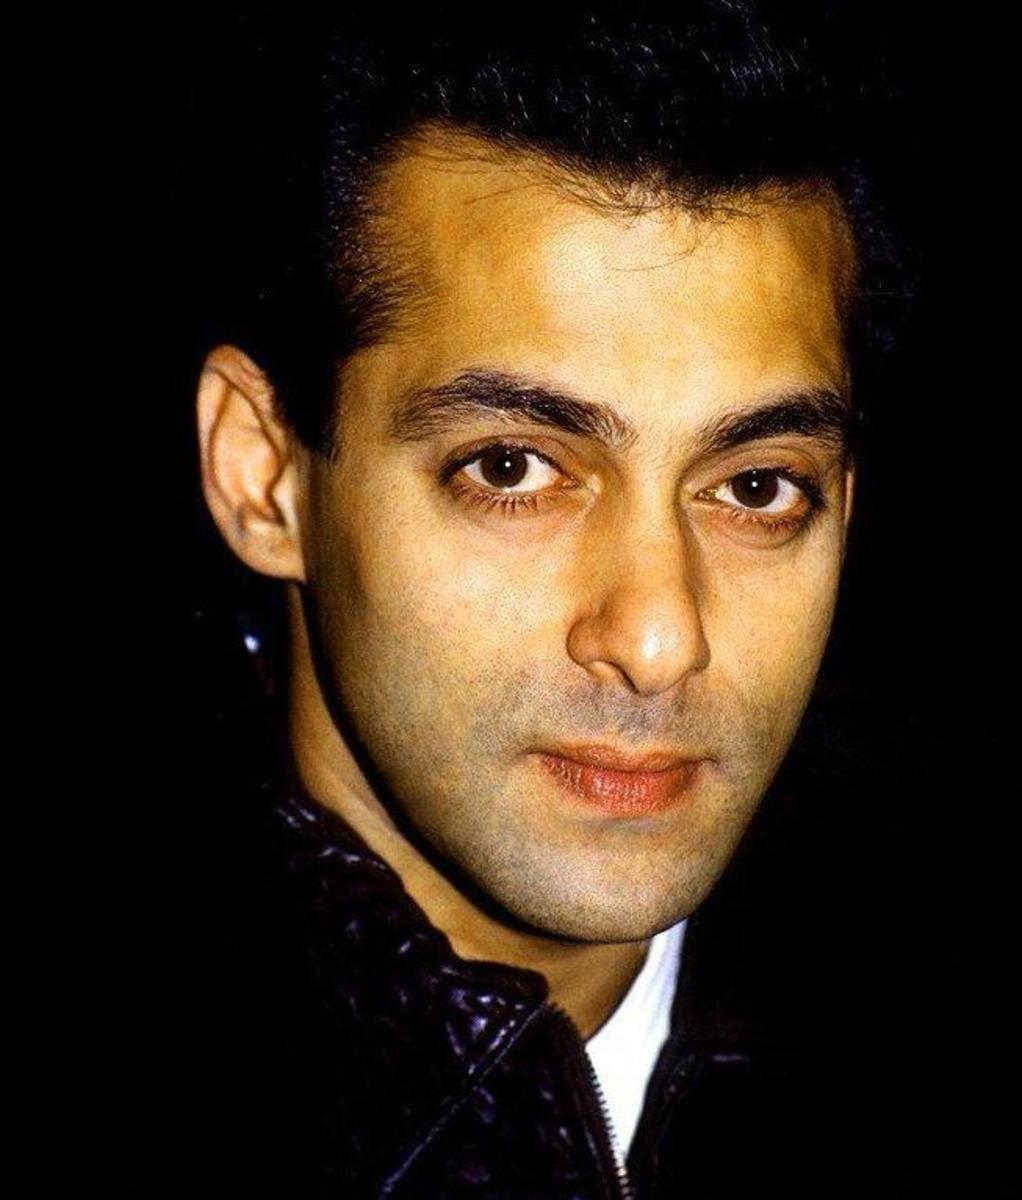 Salman Khan is one of the most popular and powerful Bollywood Actors.